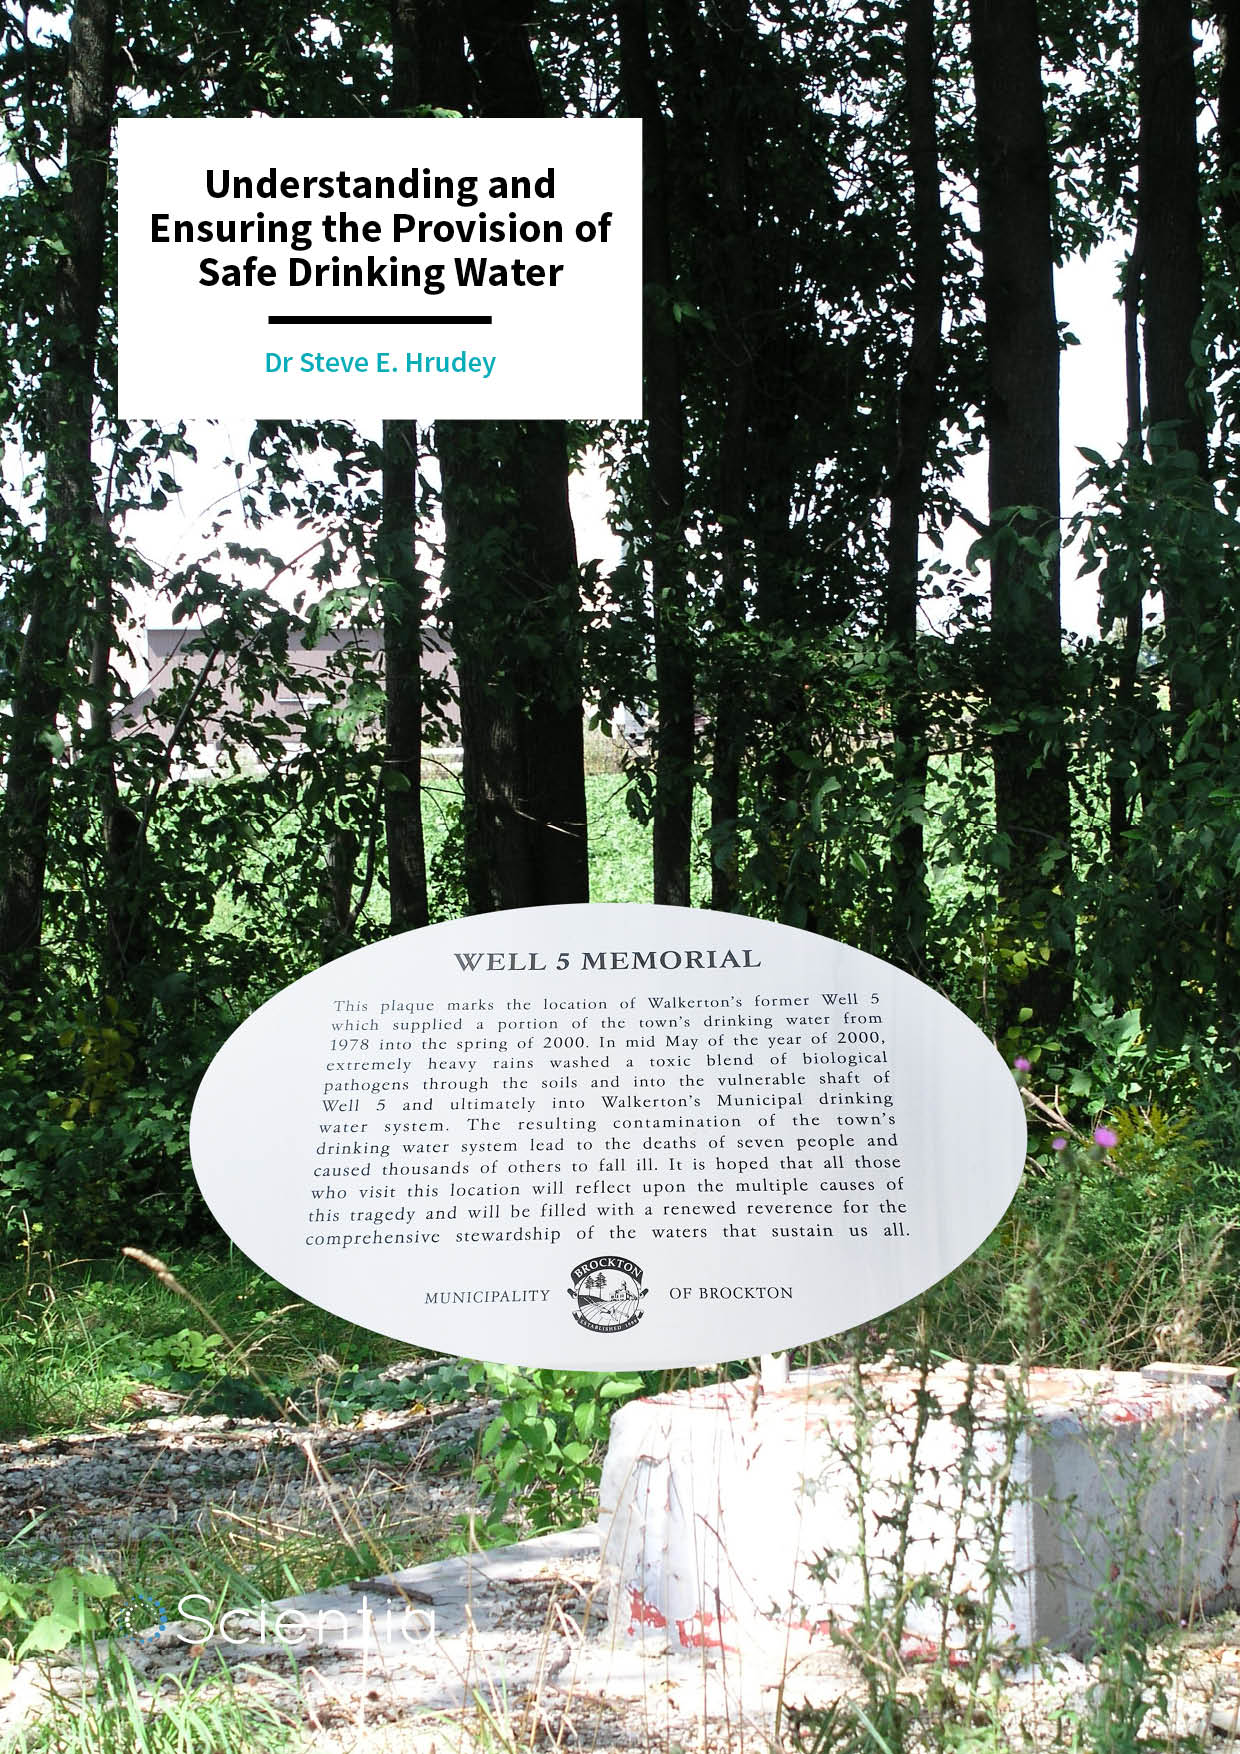 Dr Steve E. Hrudey – Understanding and Improving the Provision of Safe Drinking Water